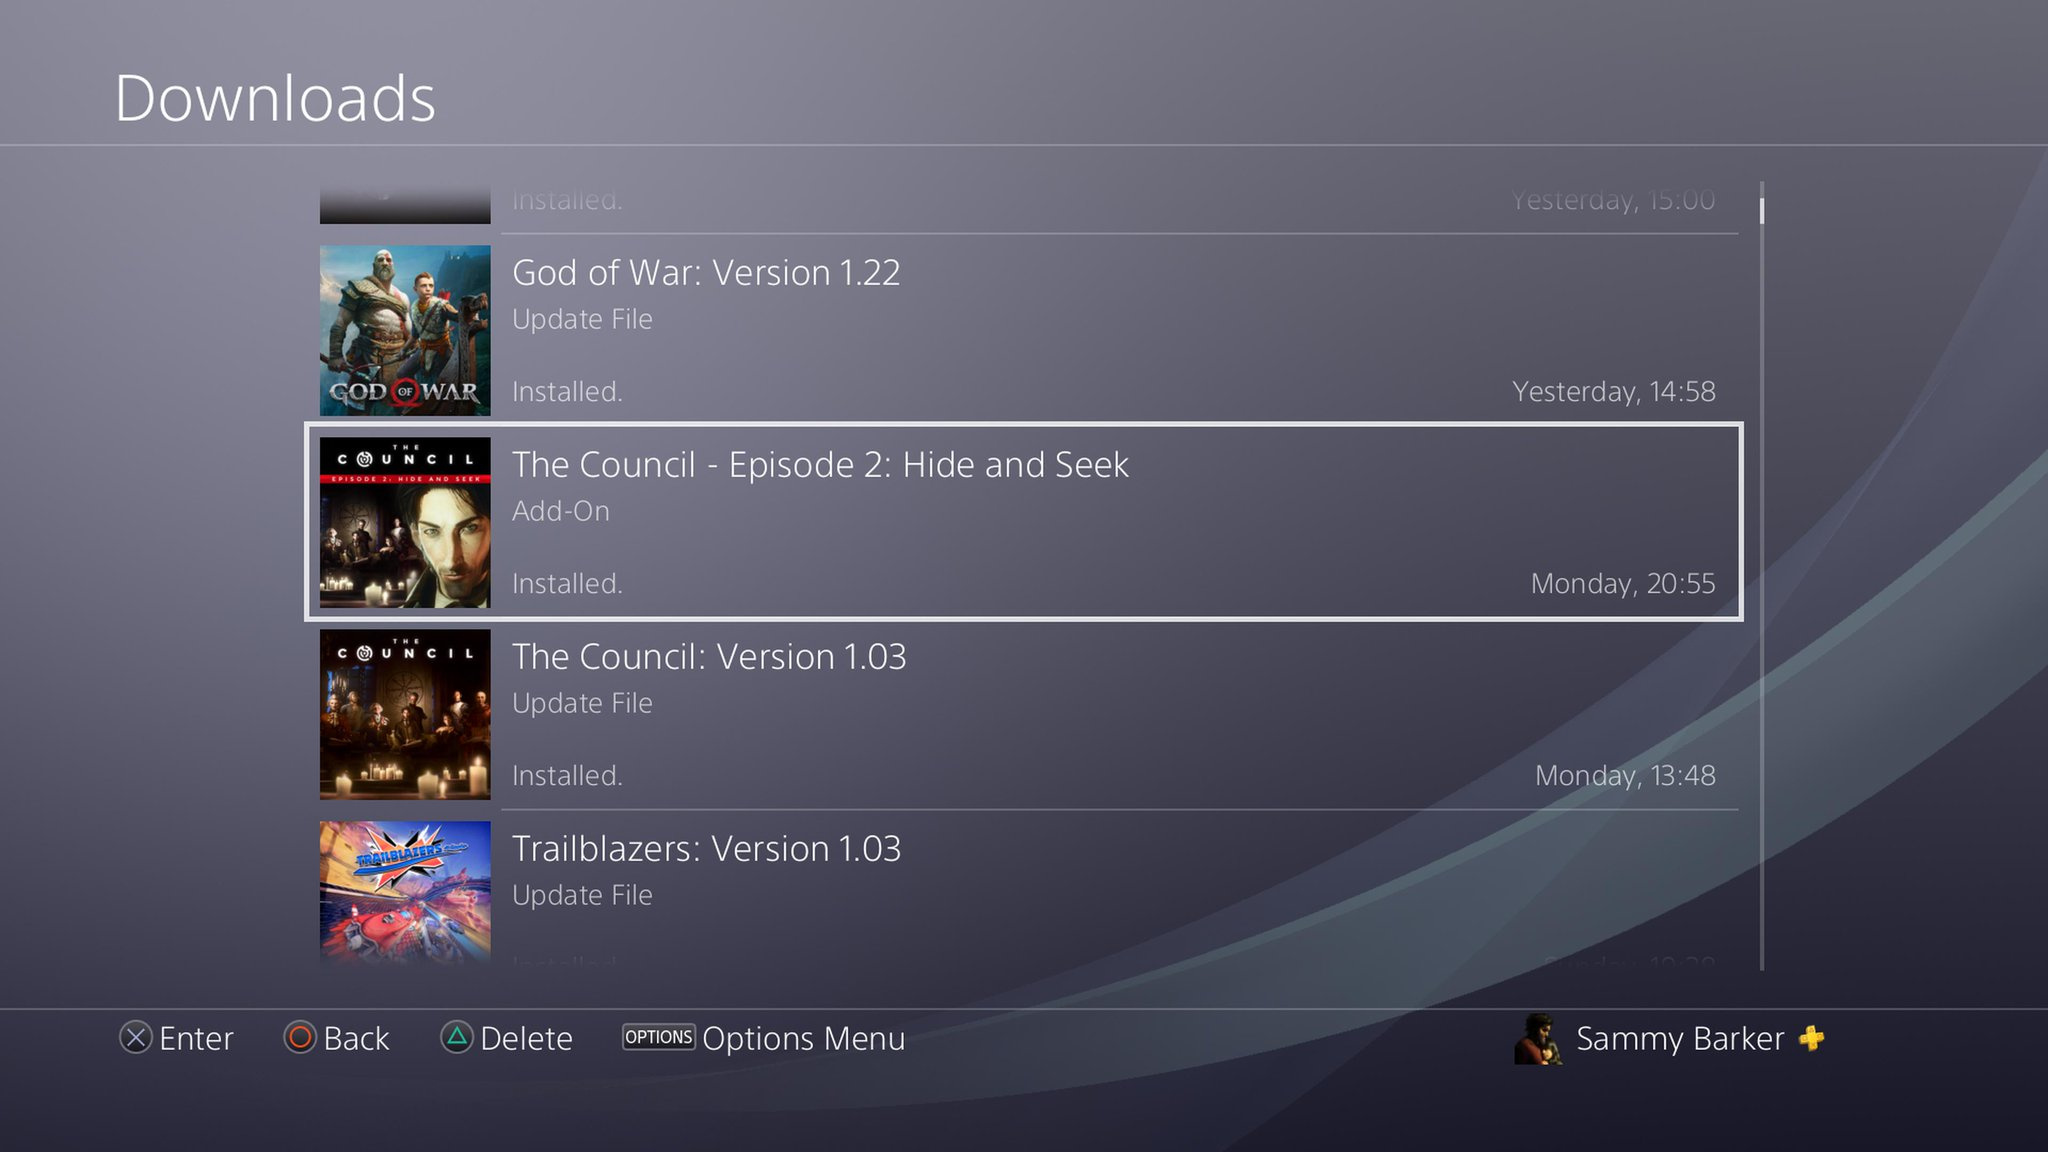 How to manage PS4 storage space - Playstation